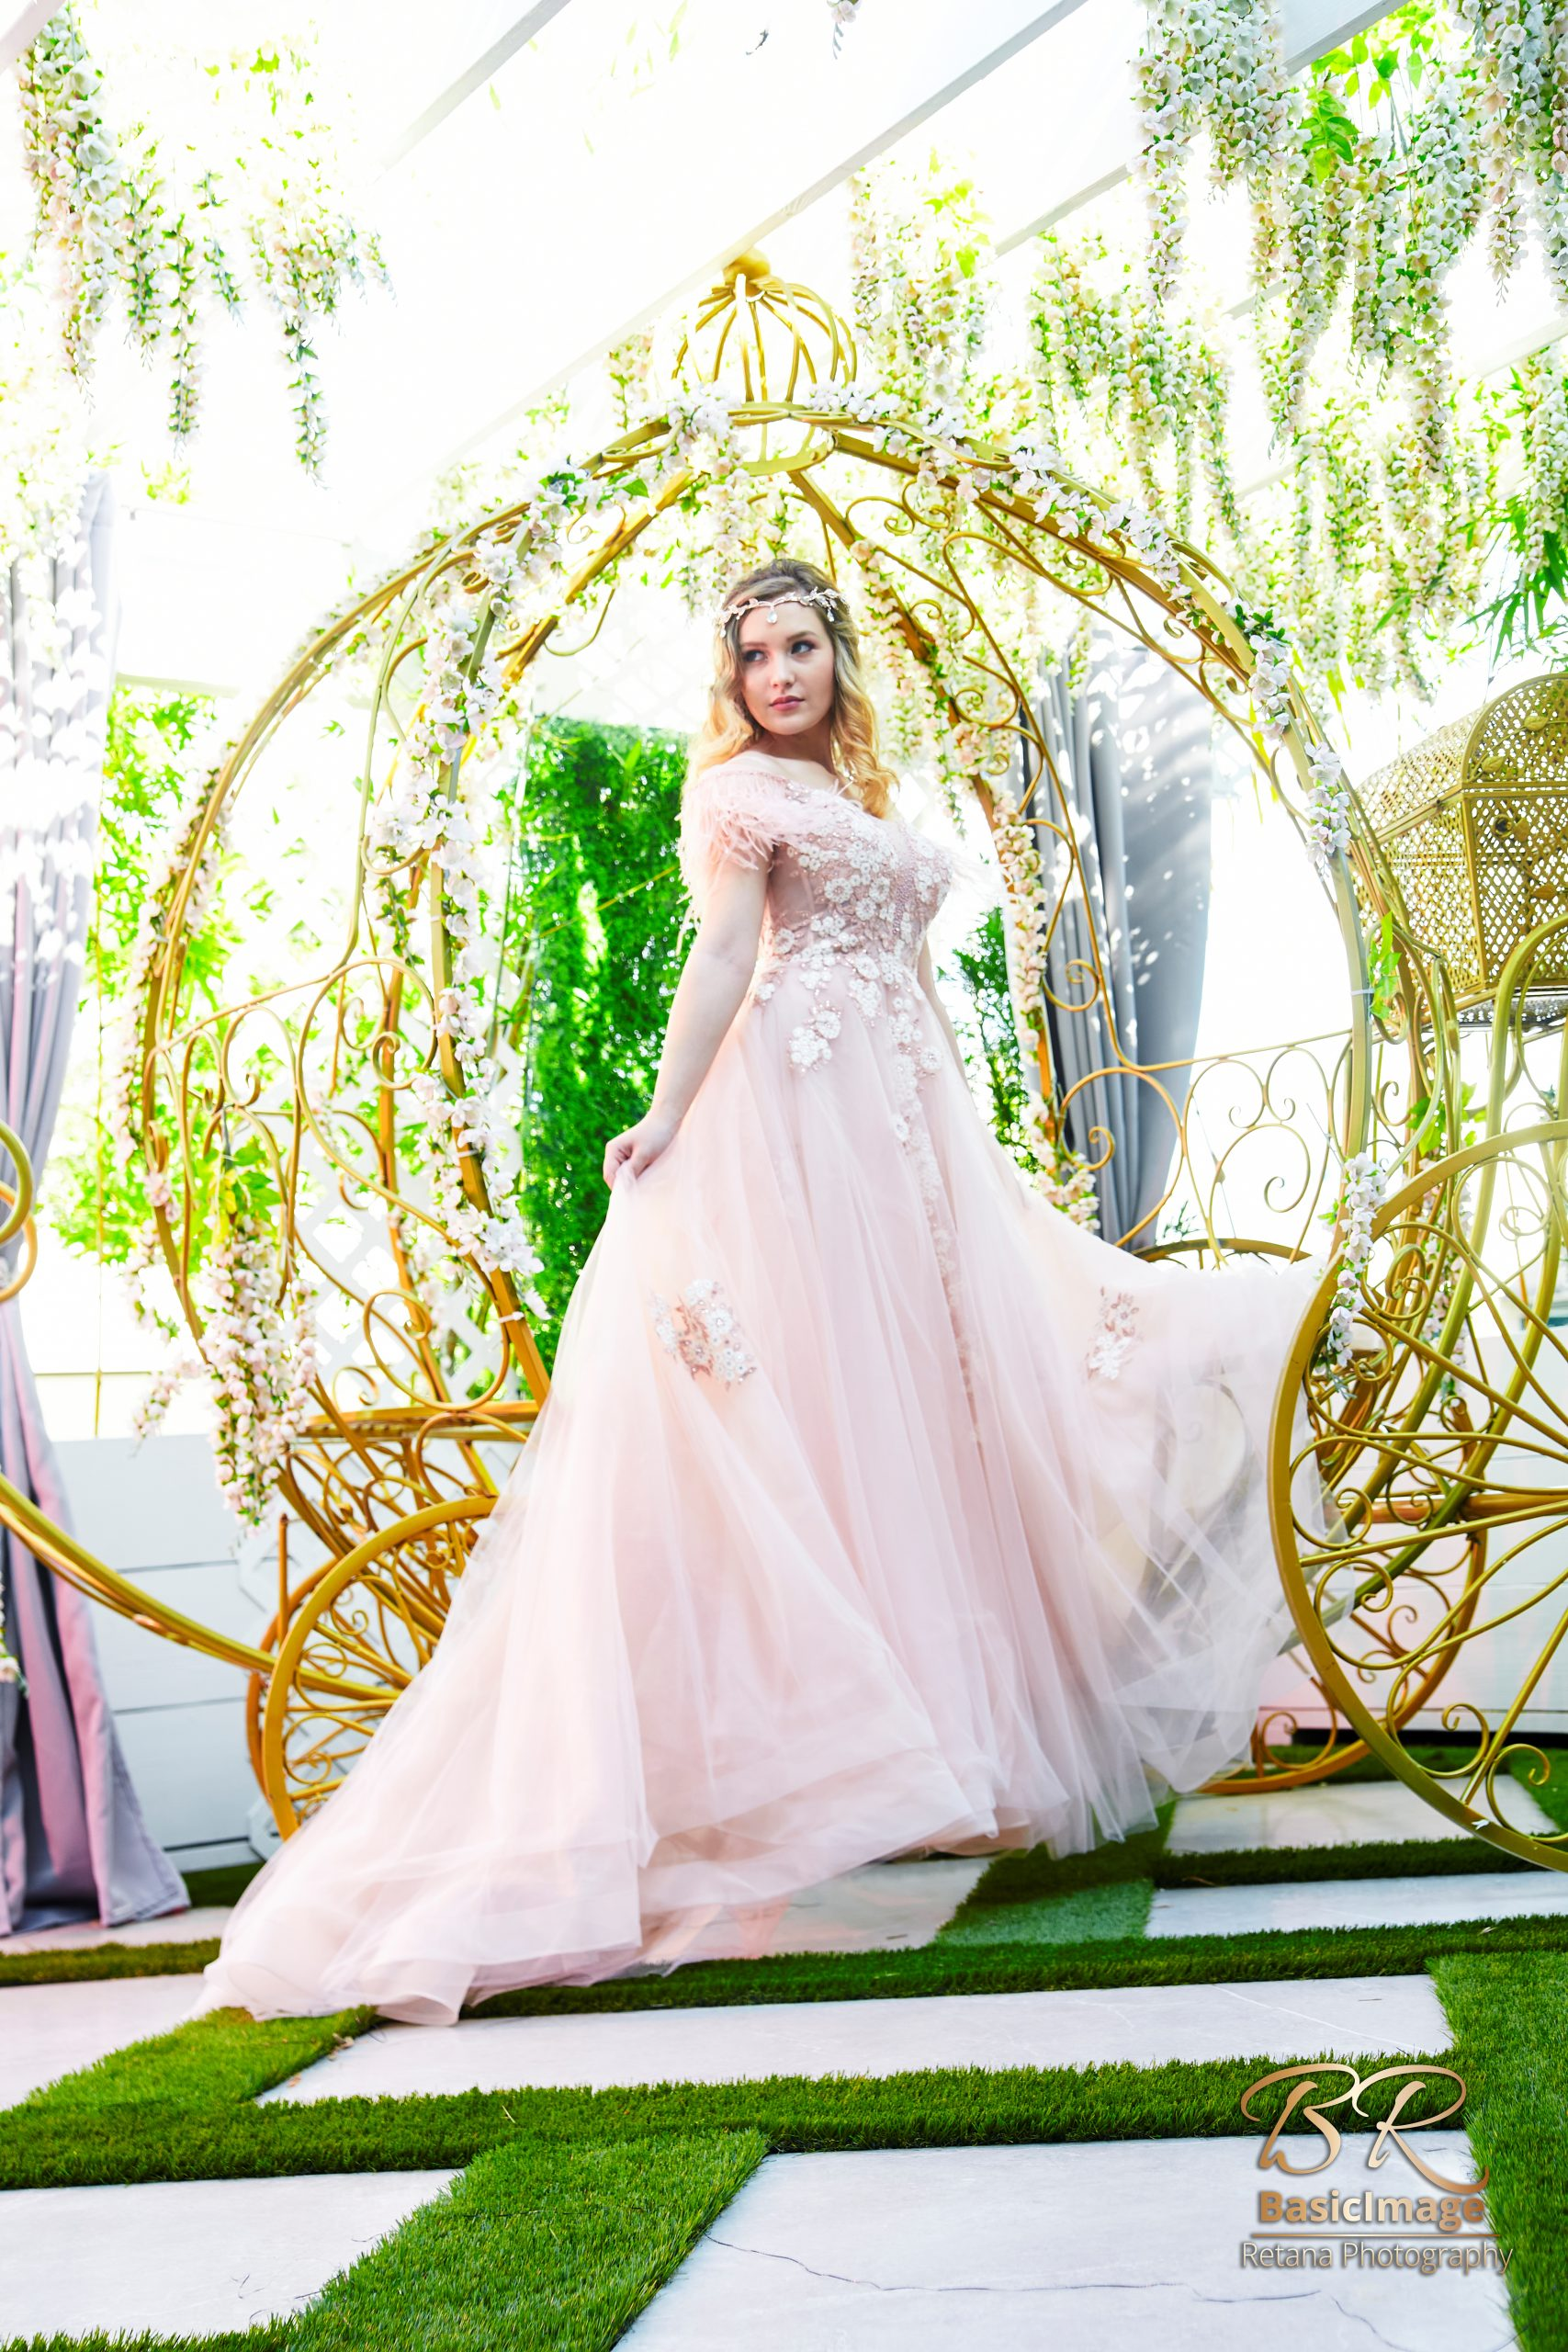 LeVenue garden model pose on carriage with distance